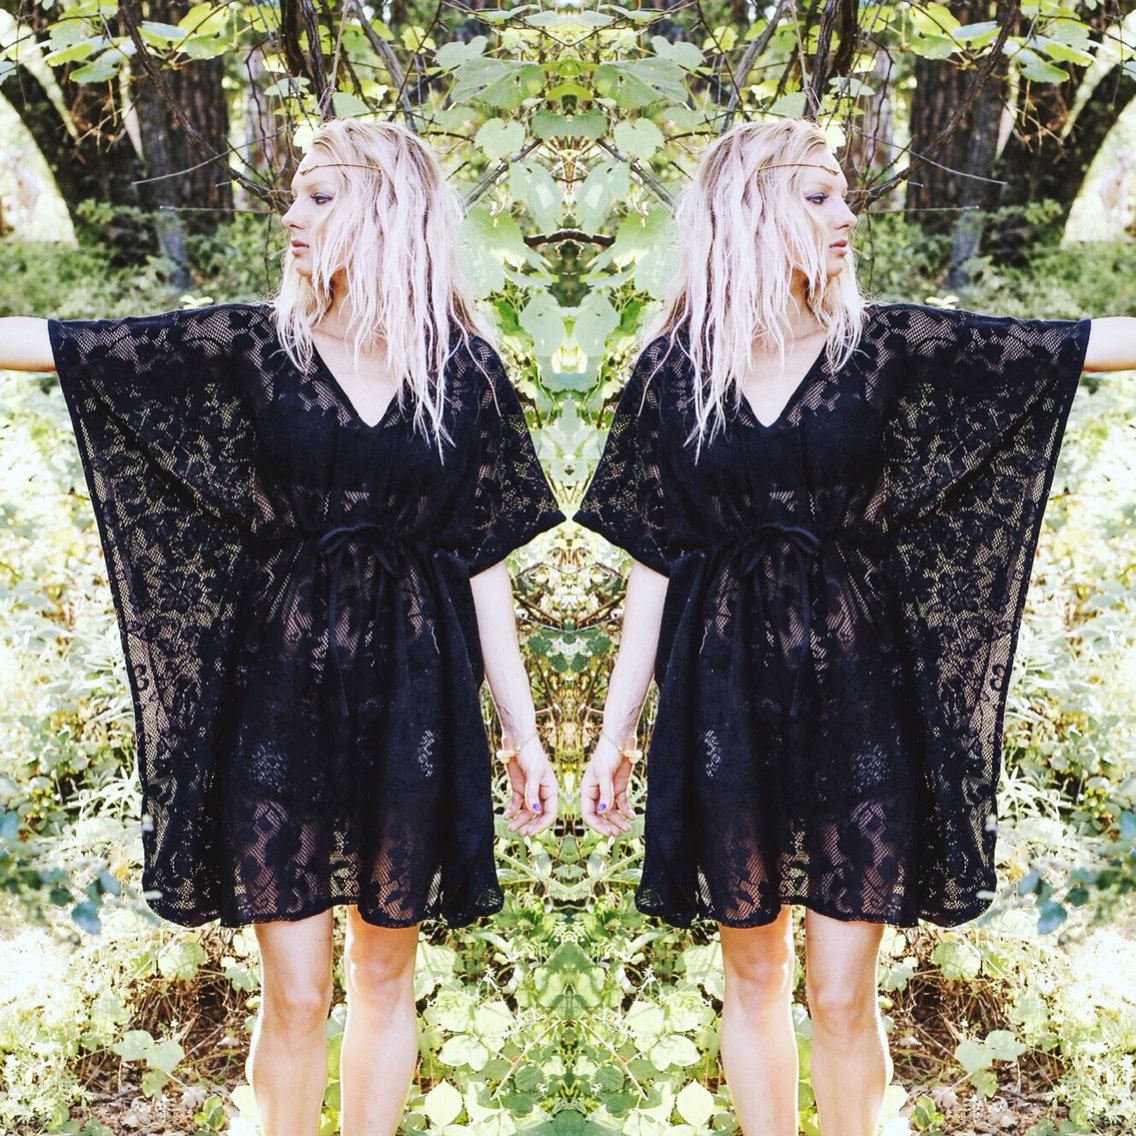 Beach Cover Up, Boho Caftan, Lace Poncho, Gypsy, Festival clothing, Bohemian, Hippie, Kaftan, Sexy Cover Up, Ceremony Dress by BlondeVagabond on Etsy https://www.etsy.com/listing/155036818/beach-cover-up-boho-caftan-lace-poncho